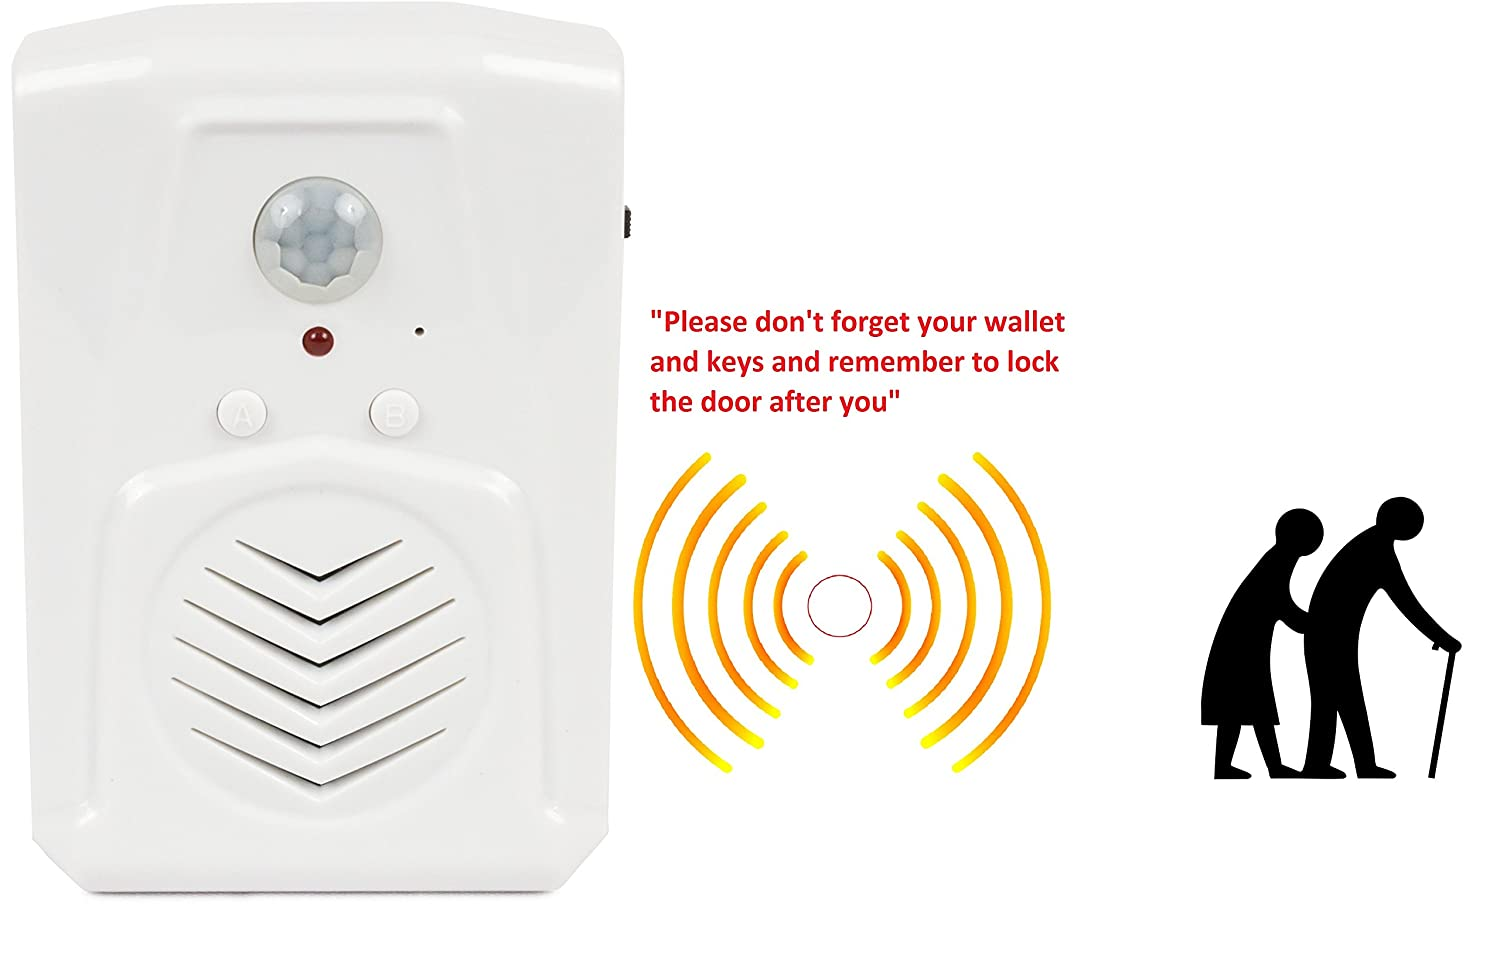 Door Greeter Daily Reminders Exhibits Perfect for Independent Living Tradeshows Portable /& Recordable Motion Activated Voice Player with Built-in Microphone Point of Sale Advertising